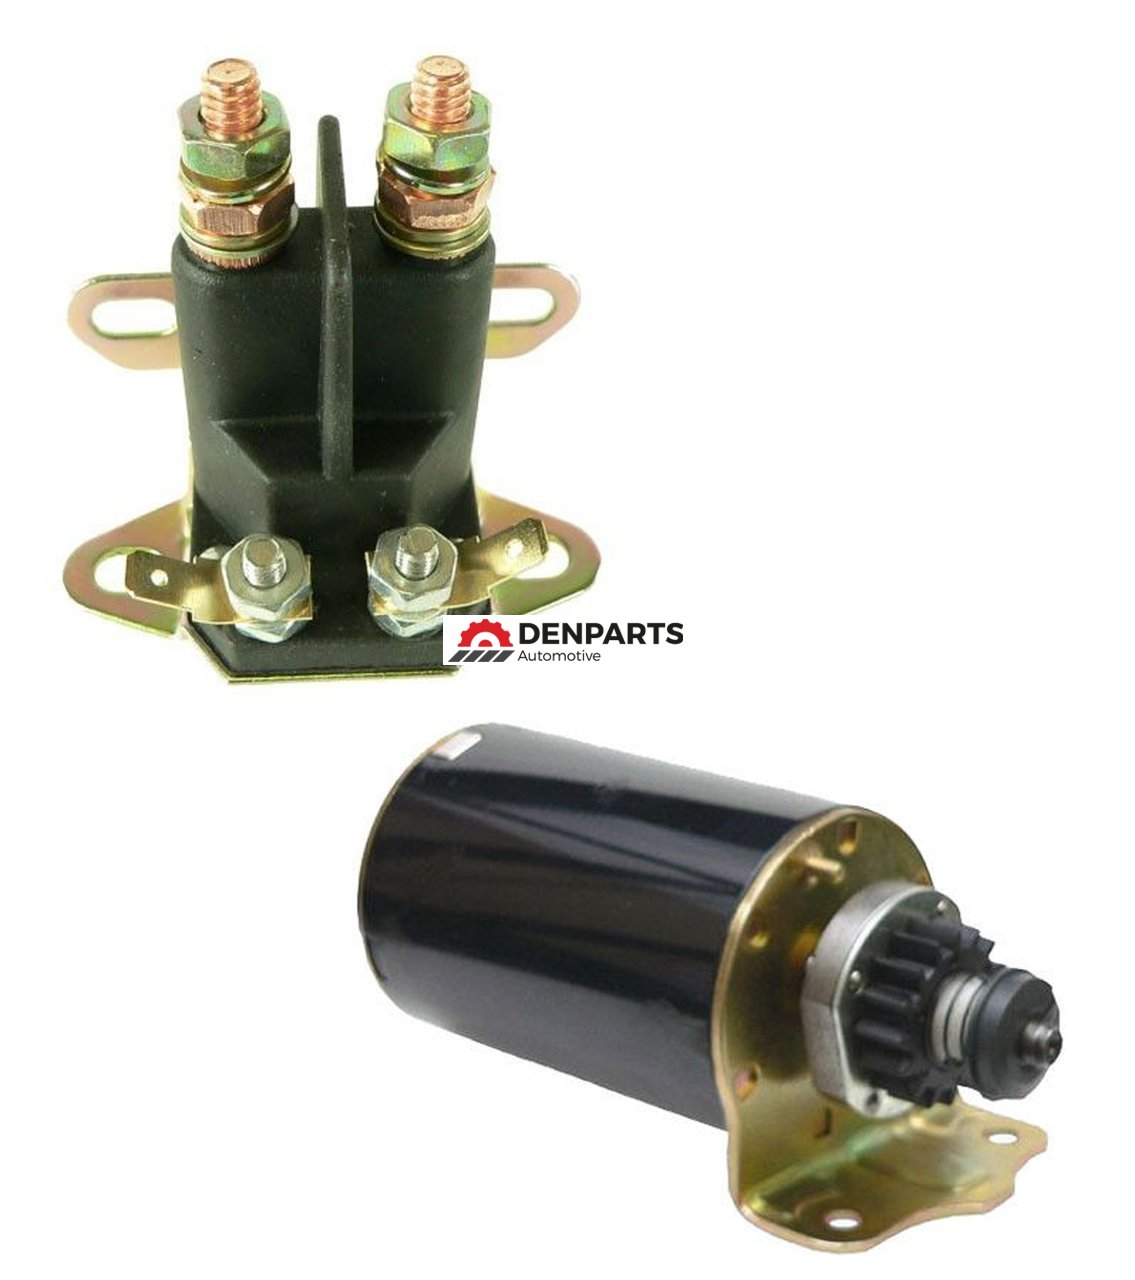 STARTER SOLENOID KIT VARIOUS BRIGGS & STRATTON ENGINES 12HP 15HP 16HP 22HP